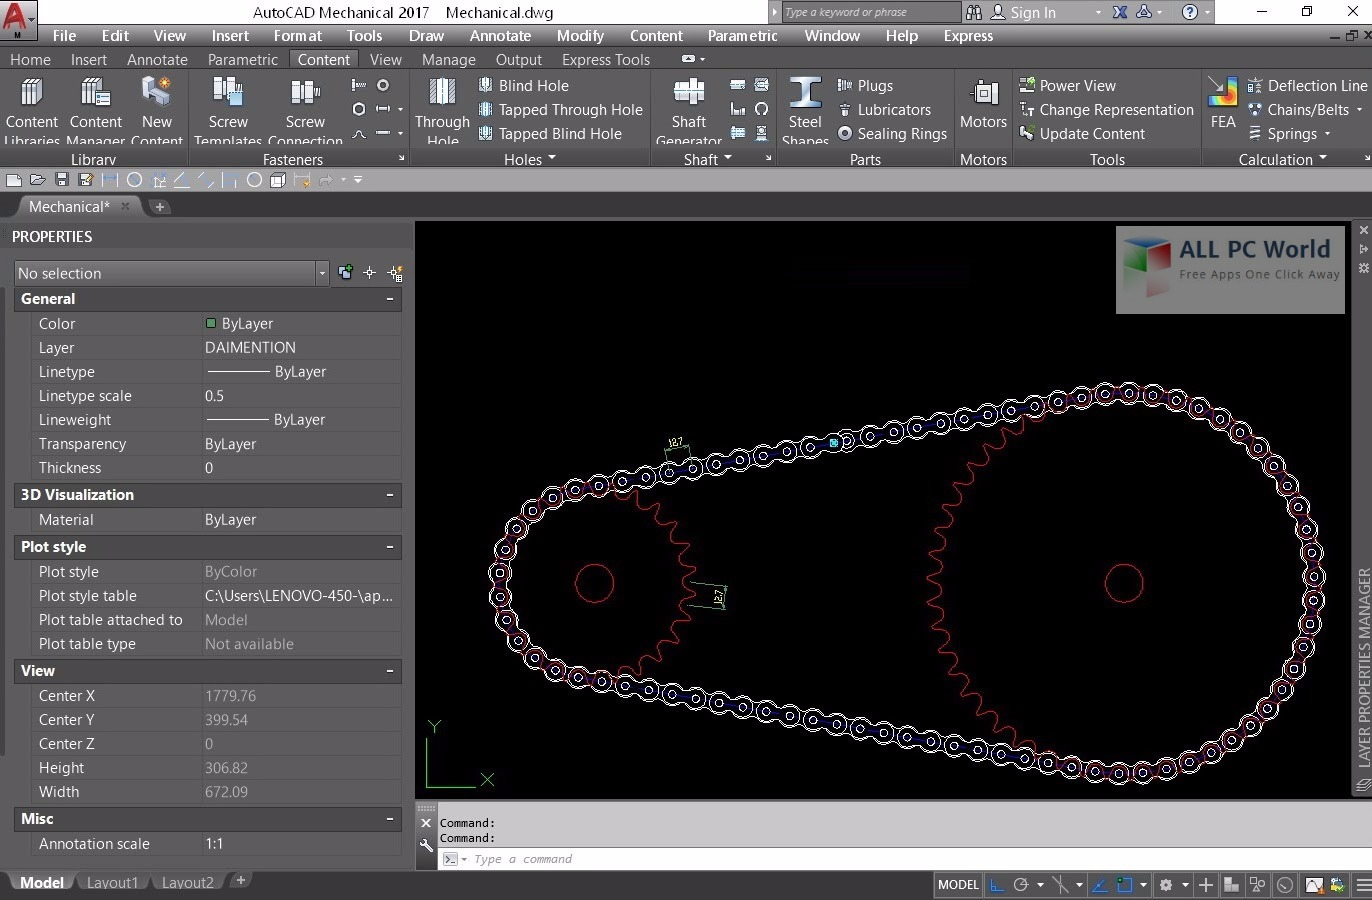 Autodesk AutoCAD Mechanical 2017 User Interface